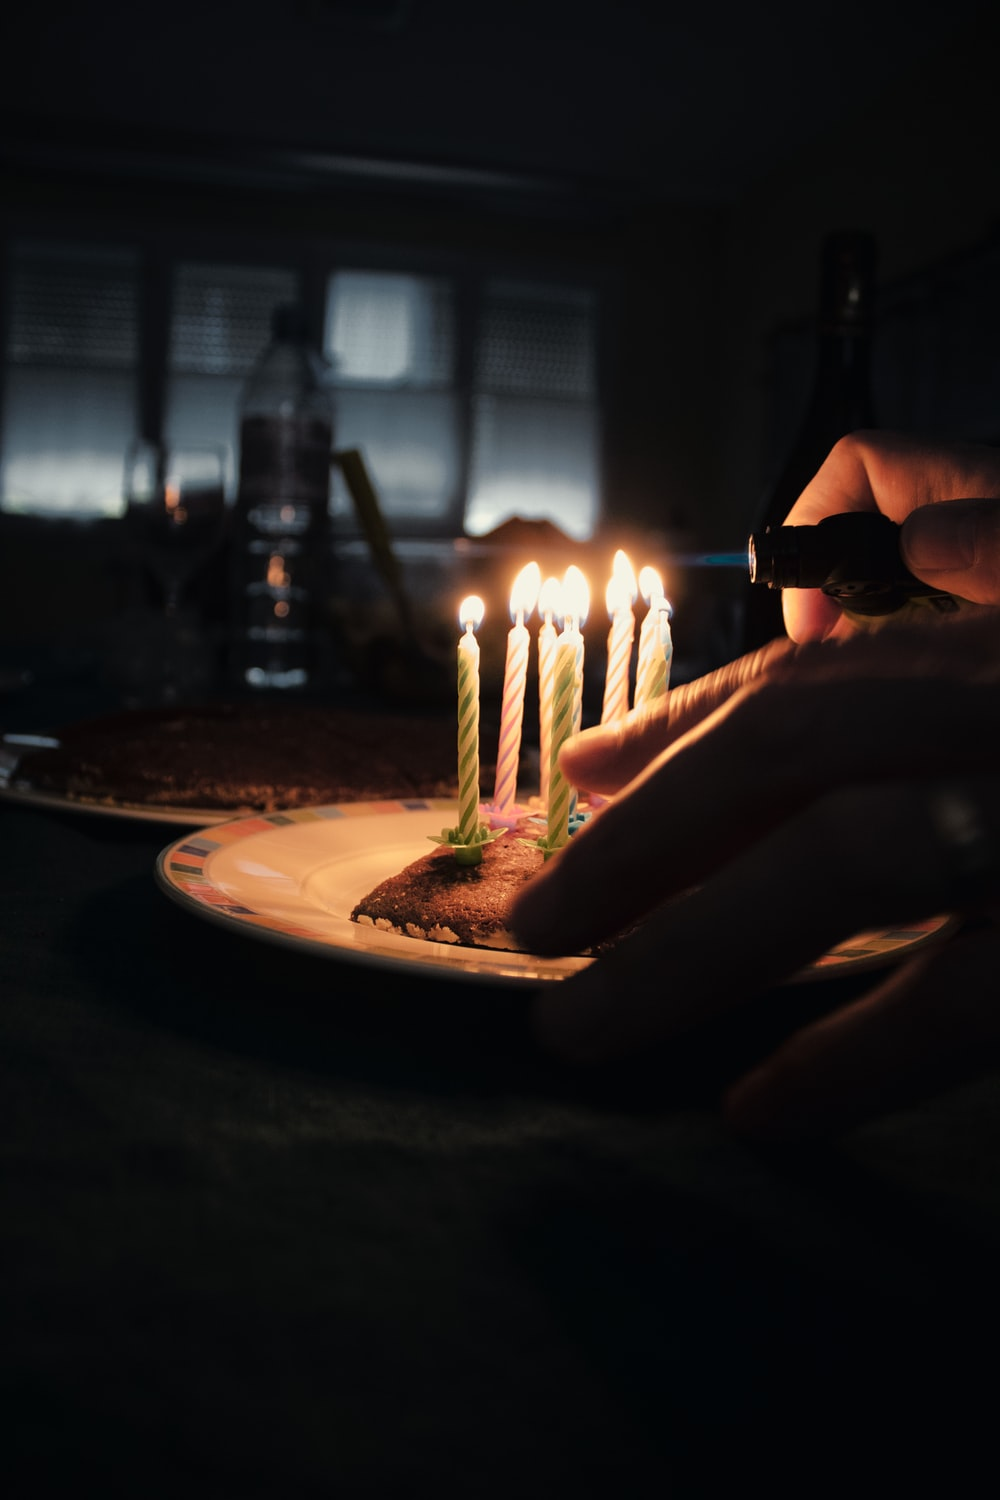 person holding lighted candles on white ceramic round plate